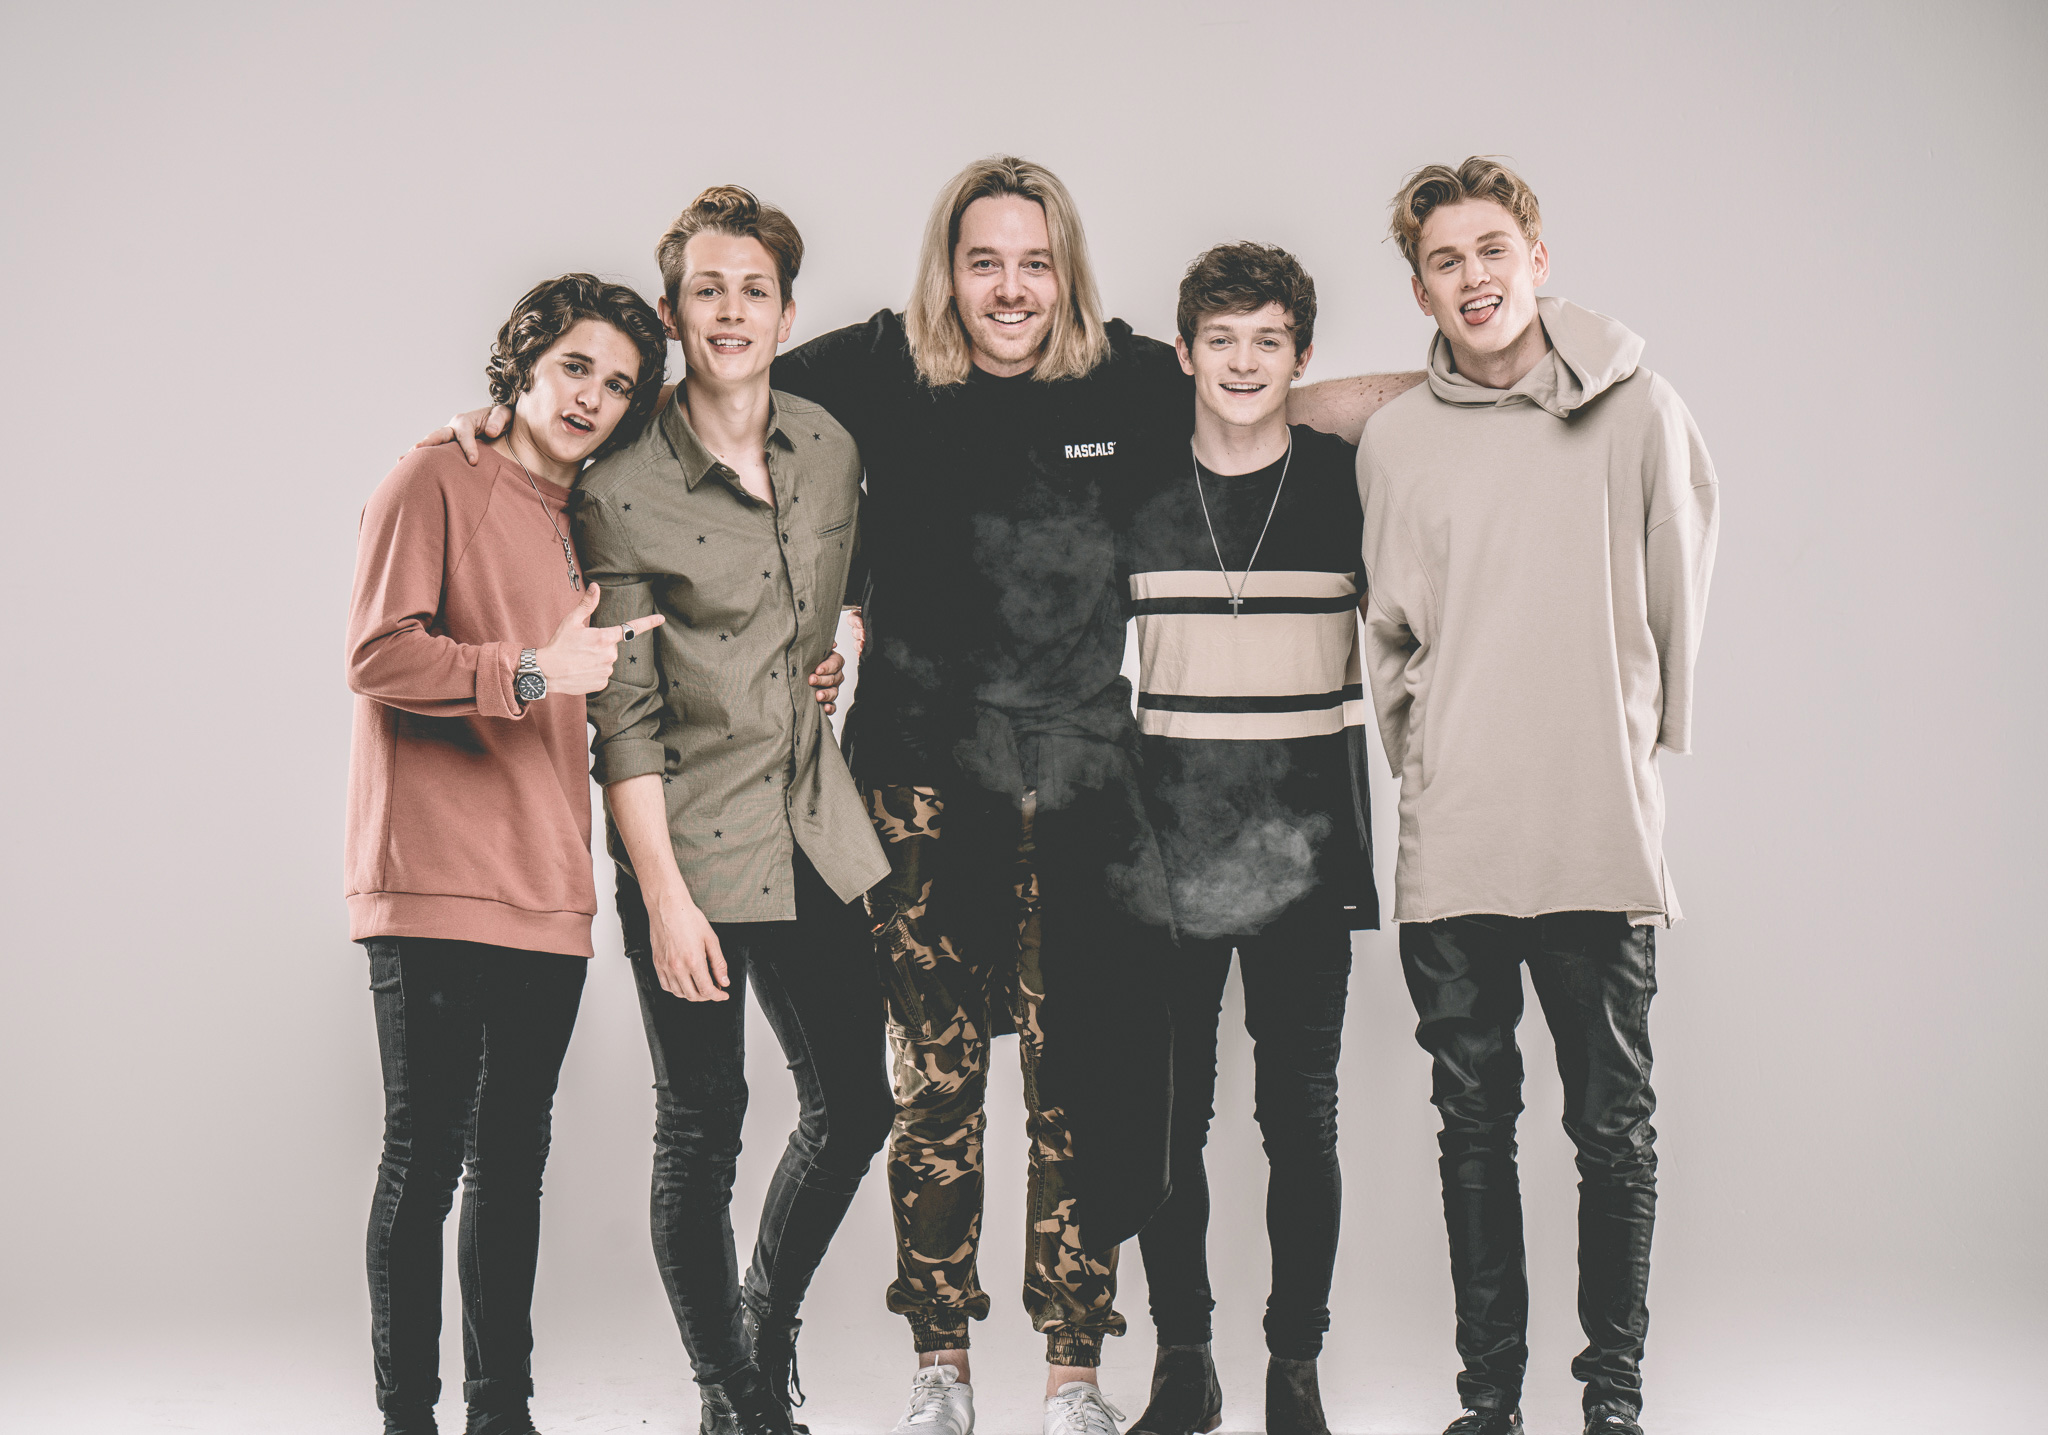 The Vamps and I. Hair was a little long and out of control here!